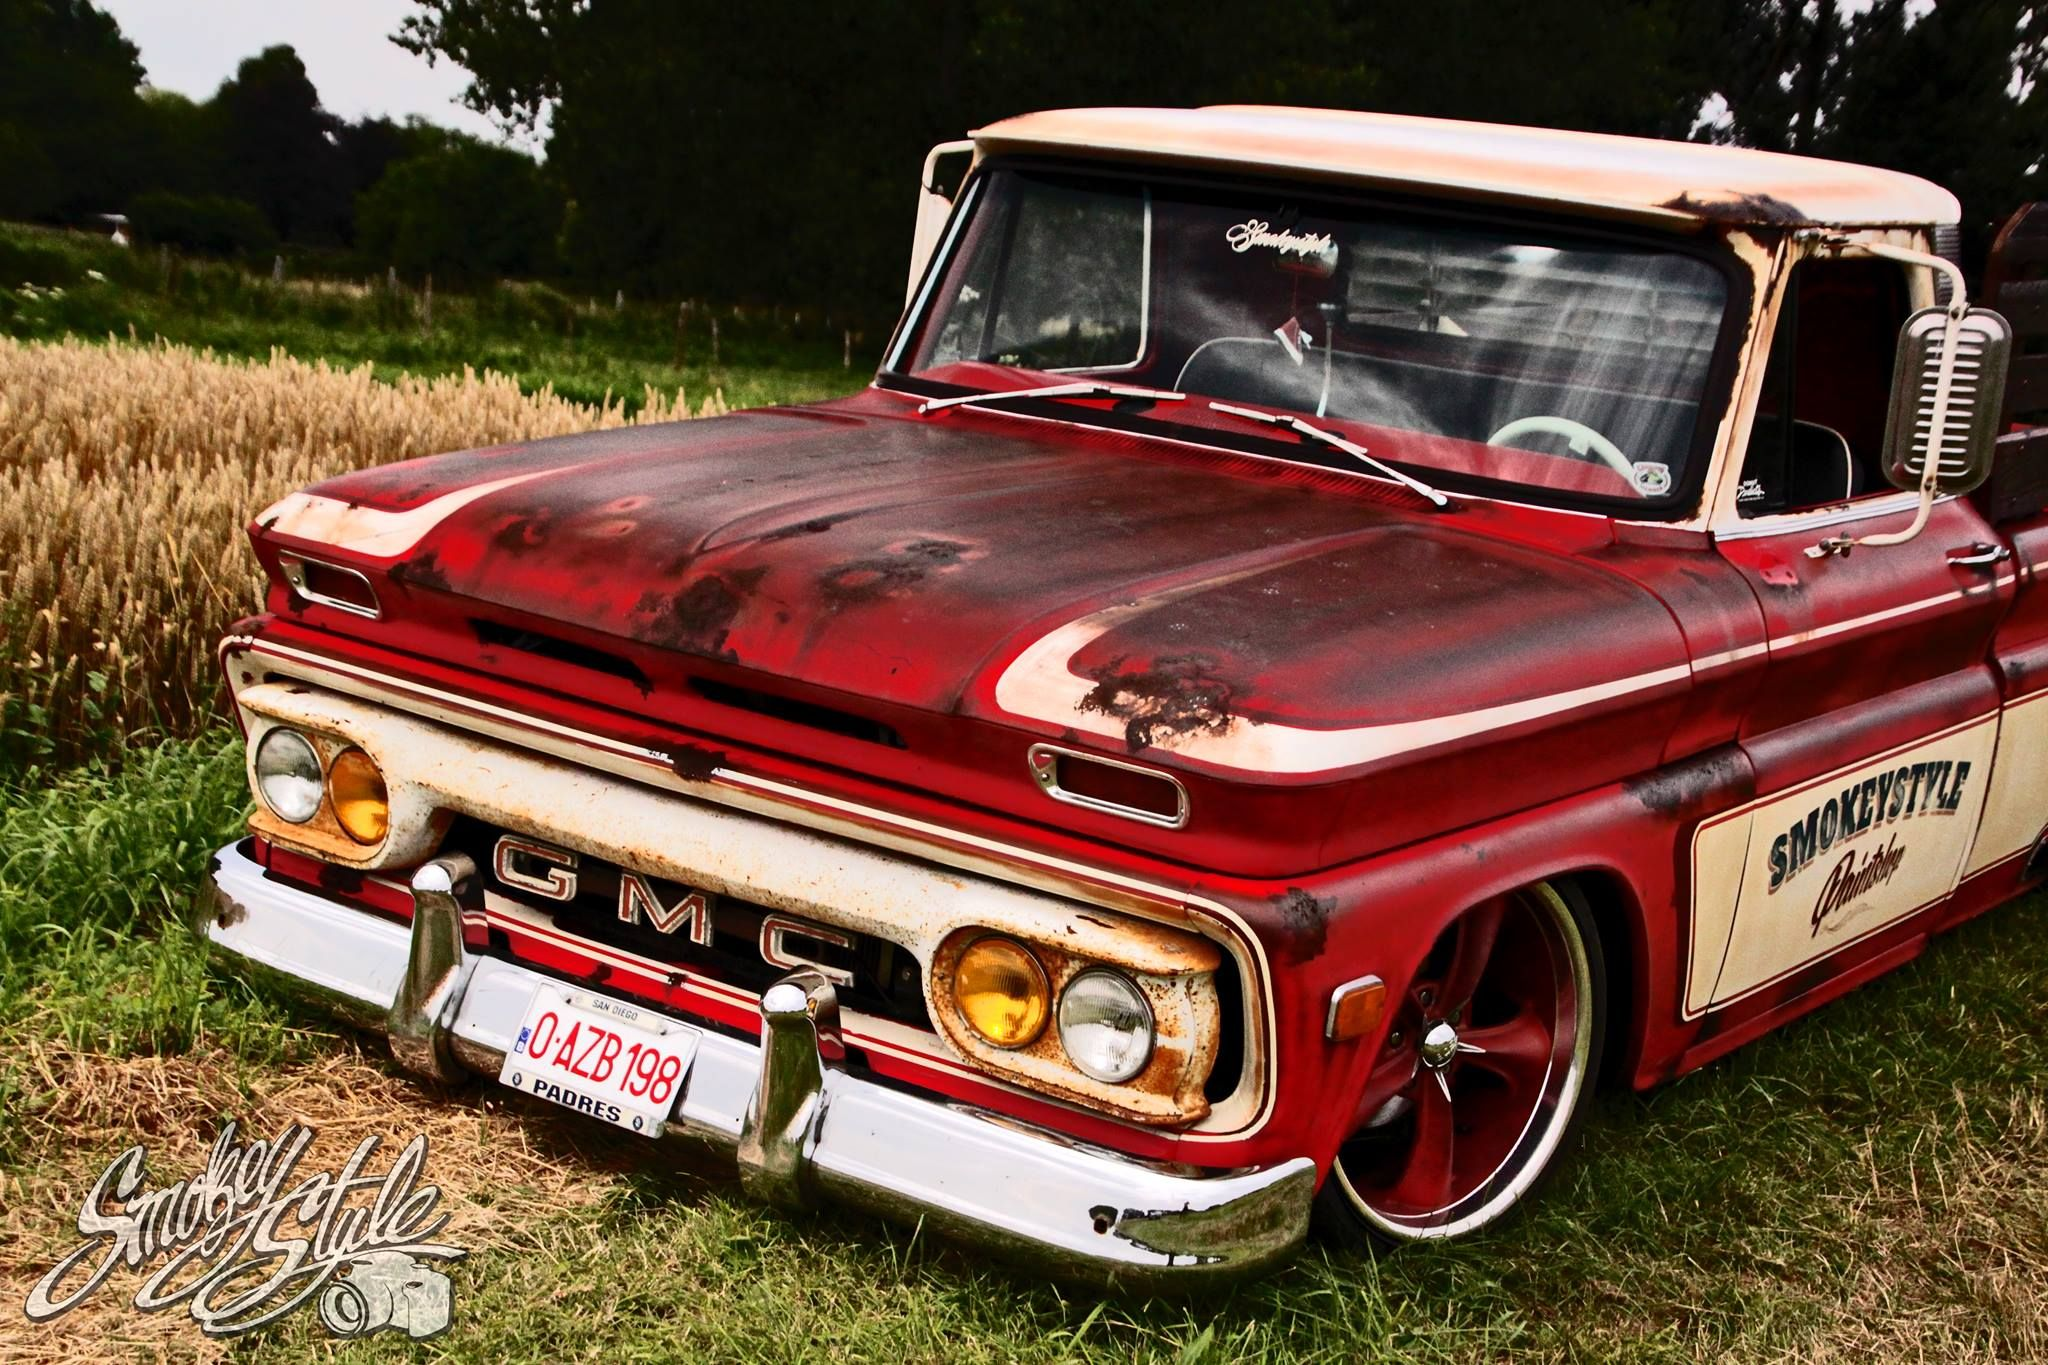 Fautina 1964 66 chevy c10 slammed over big five spoke wheels with shop graphics and